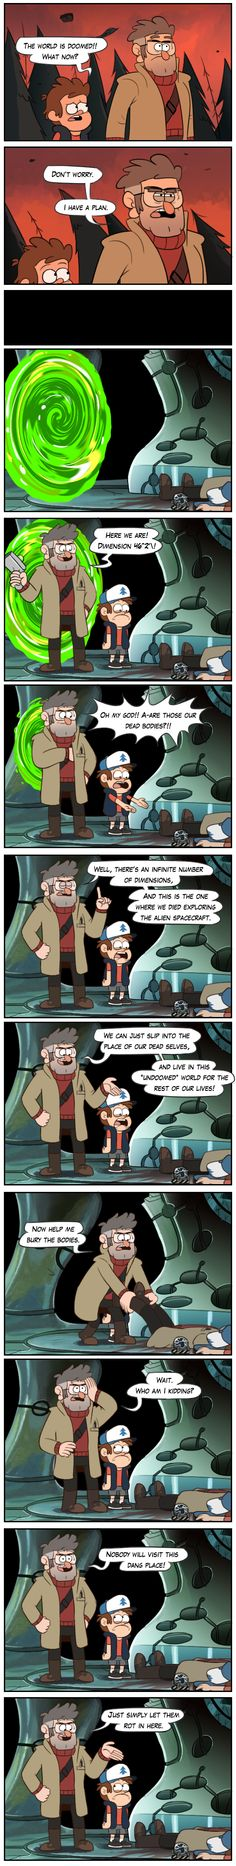 A Rick and Morty/Gravity Falls crossover would perhaps not be the best idea.